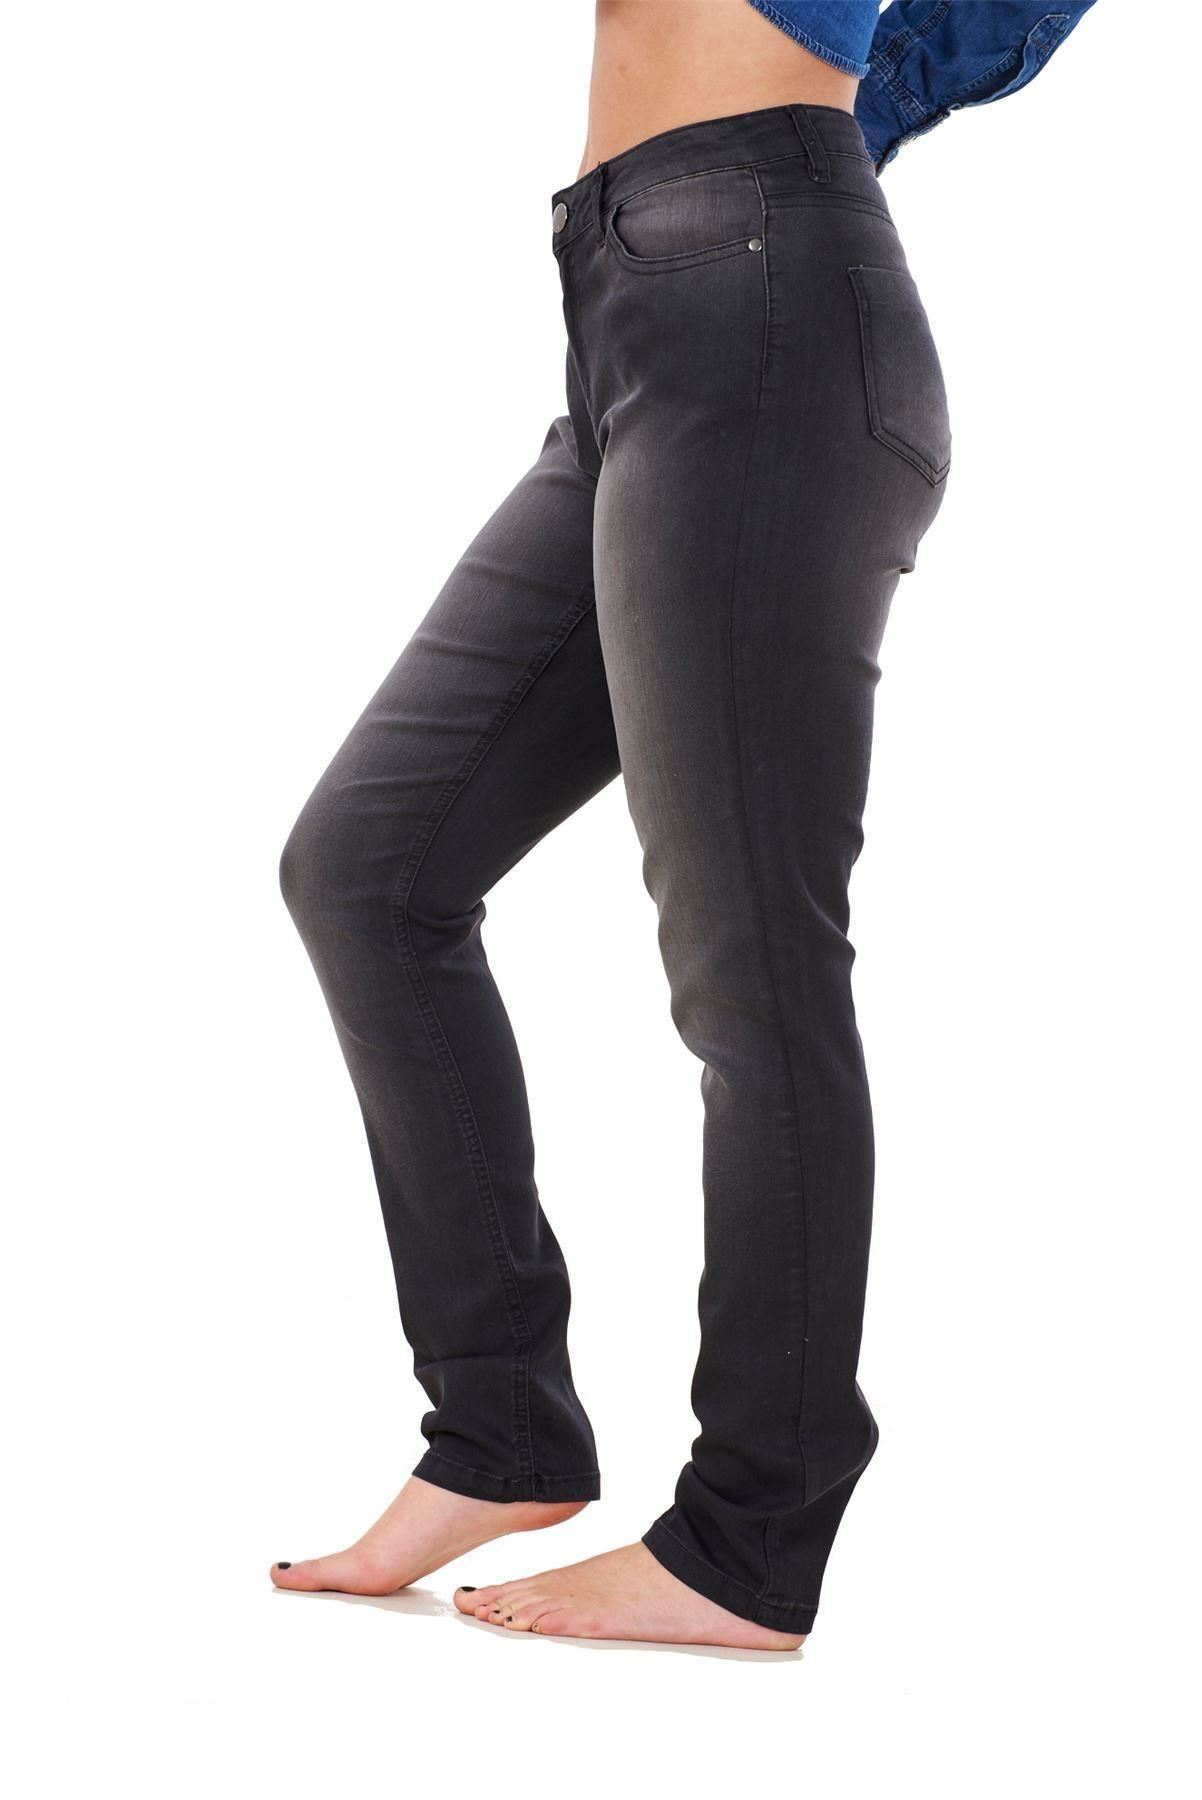 Ladies-Stretch-Jeans-Denim-cotton-Zip-fly-High-Waisted-Slim-Fit-Trousers-Pants thumbnail 12